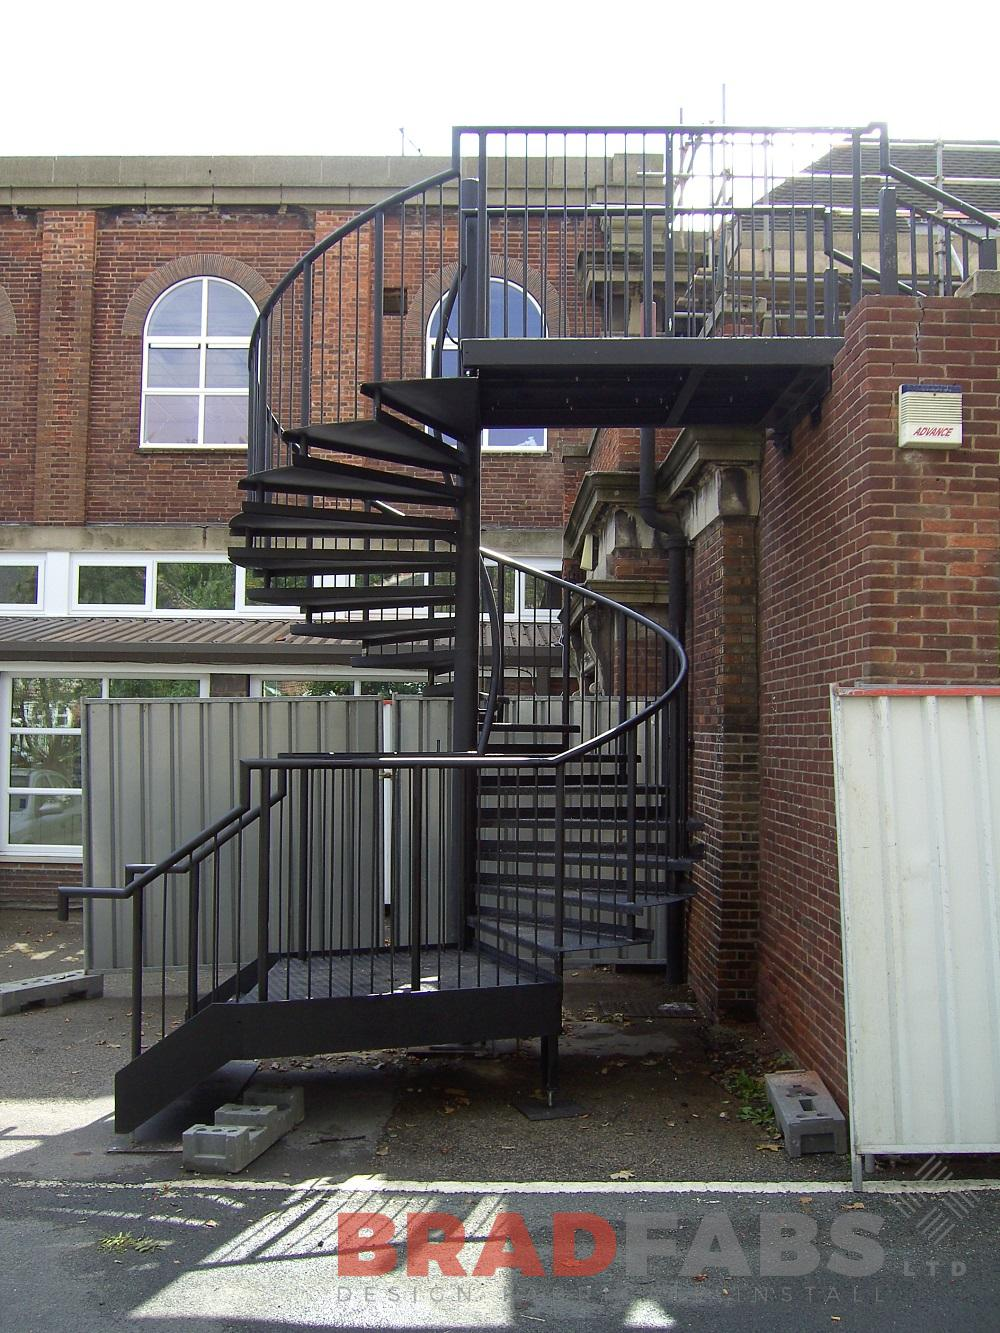 Spiral staircase installed in leeds, external spiral staircase for commercial use, spiral staircase fabricated in bradford by bradfabs